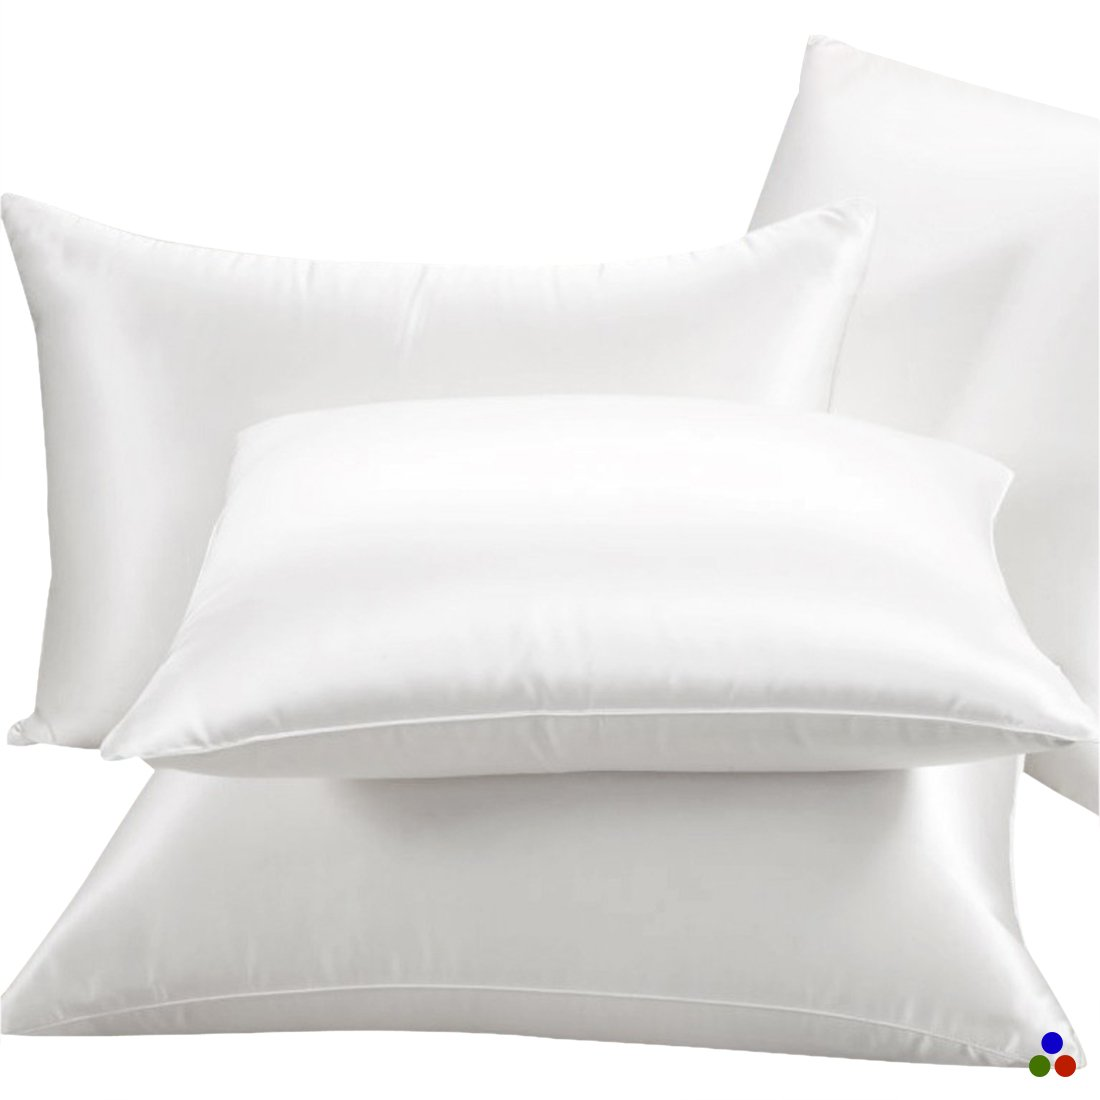 ElleSilk Silk Filled Pillow, White Silk Covered Pillow, 100% Natural Mulberry Silk, Firm Support, Naturally Breathable, King, 1pc